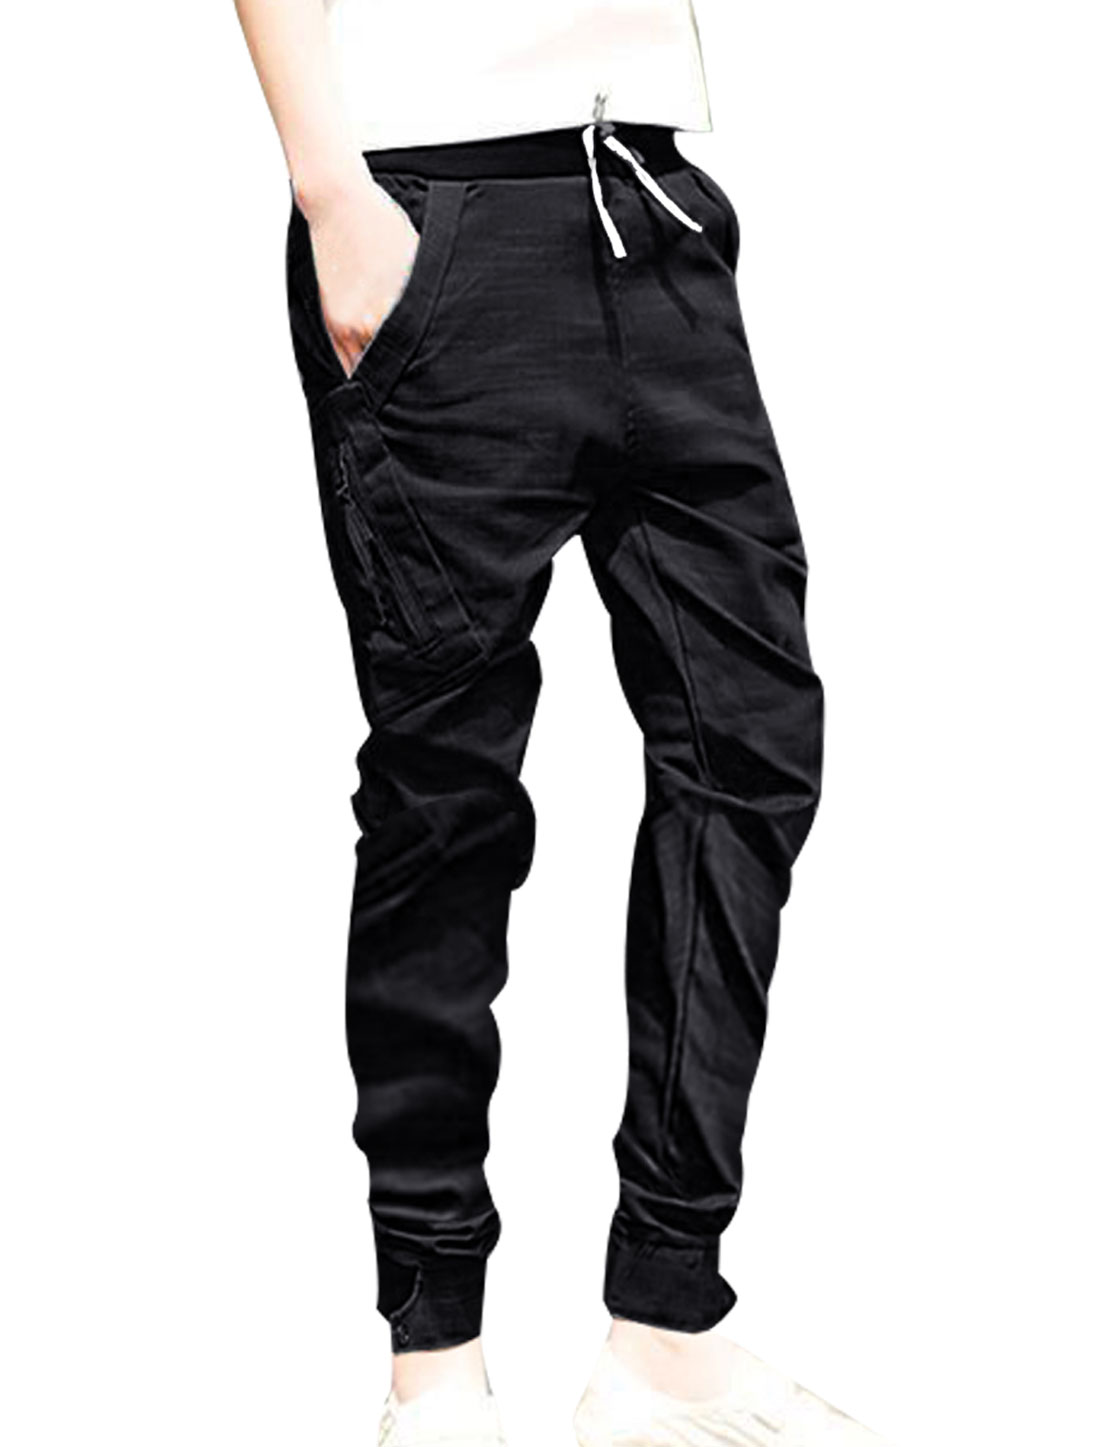 Men Black Side Pockets Drawstring Waist Casual Cropped Pants W31